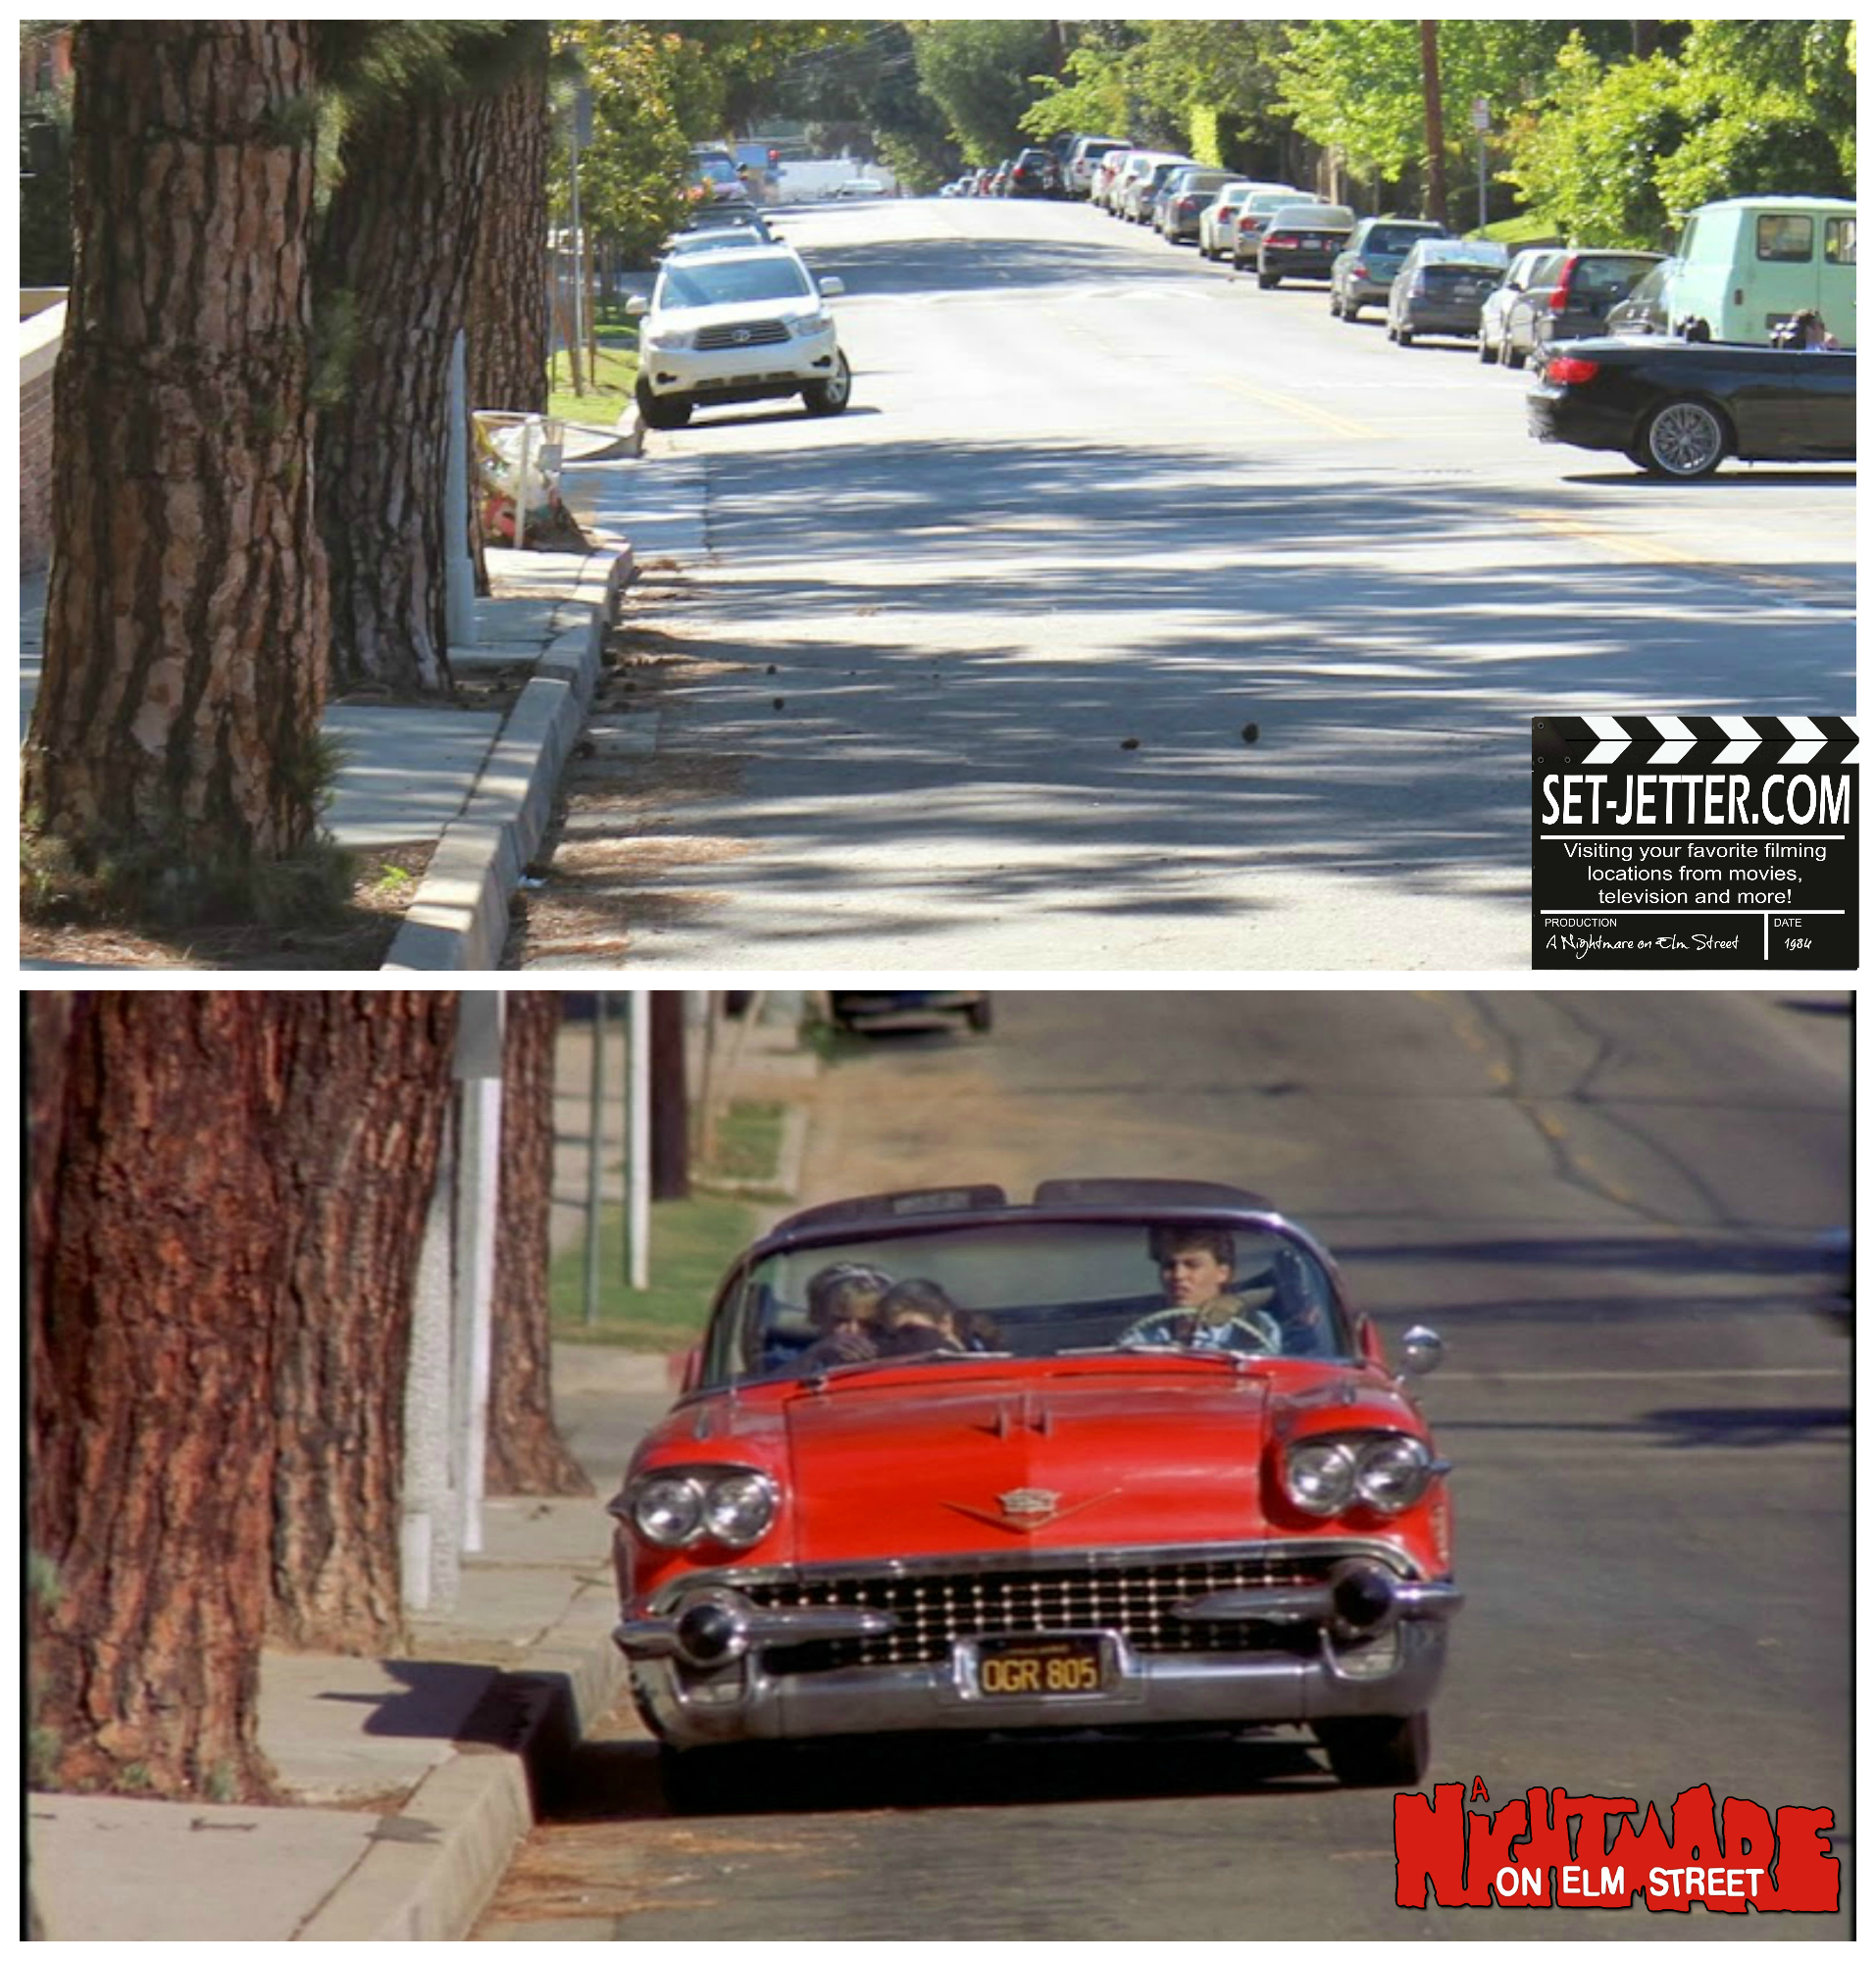 Nightmare on Elm Street comparison 02.jpg